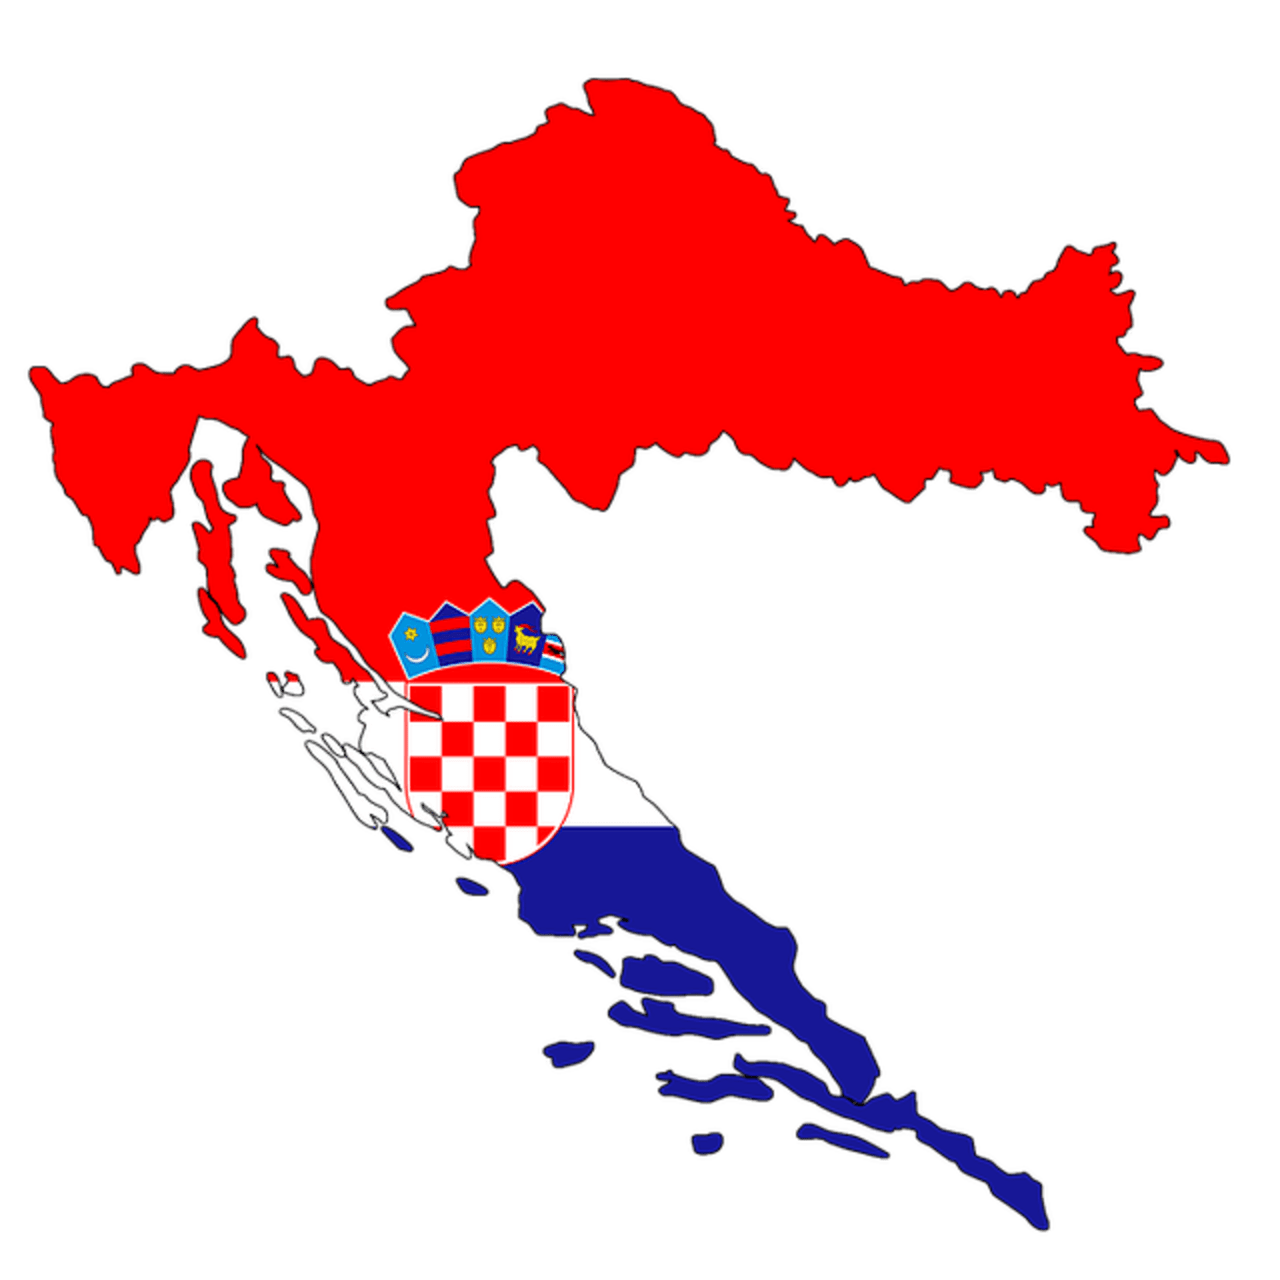 From Croatia with Love - Half an Hour of Enjoyment in Croatia